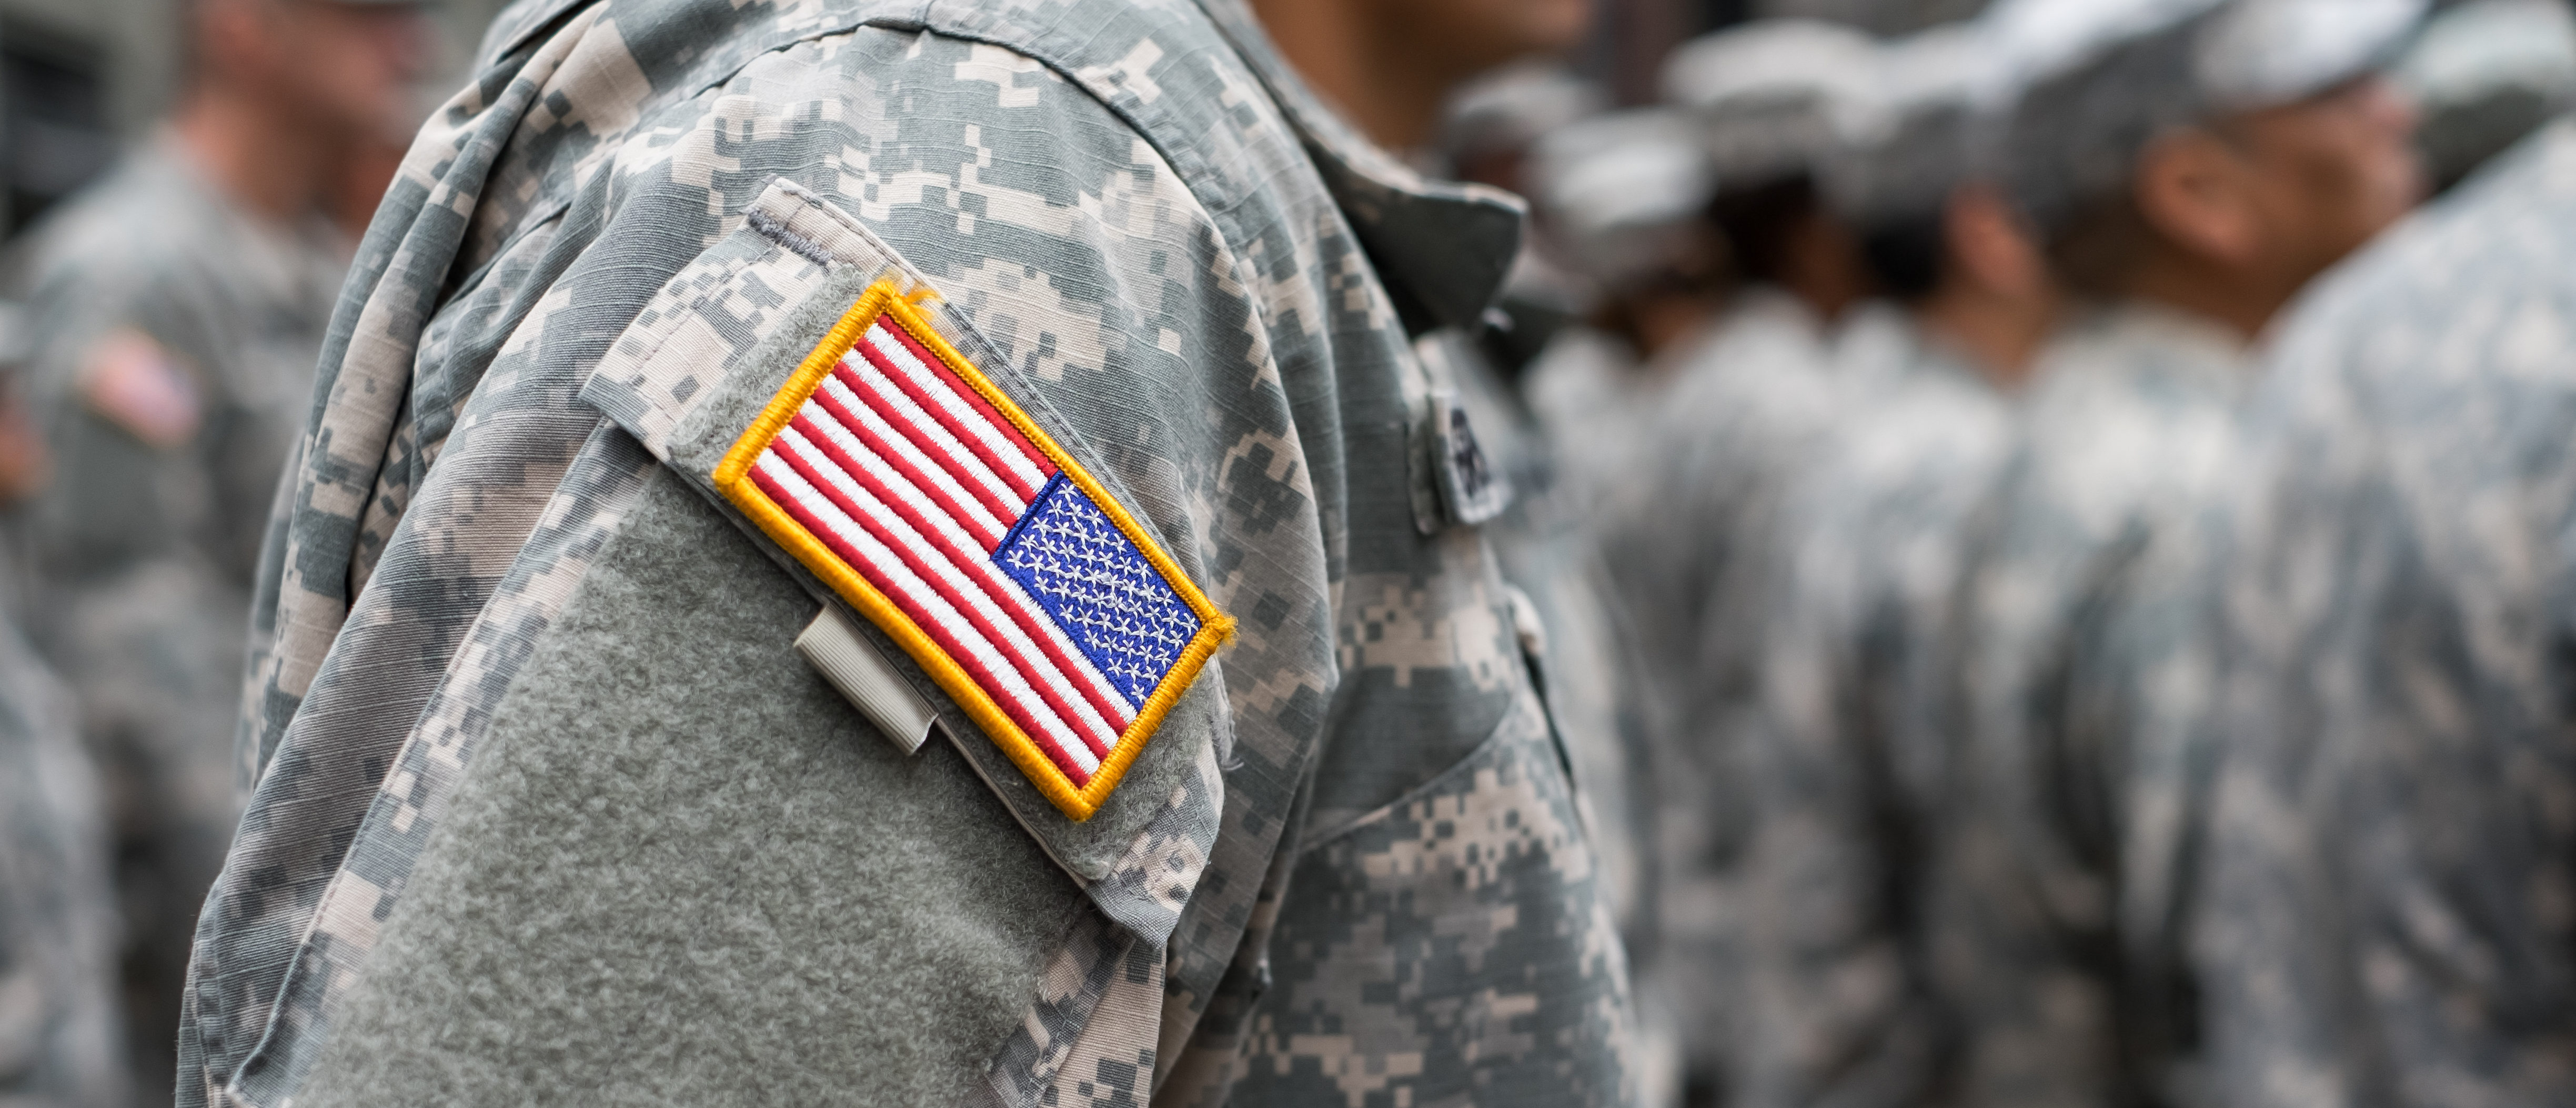 USA patch flag on soldiers arm. Shutterstock